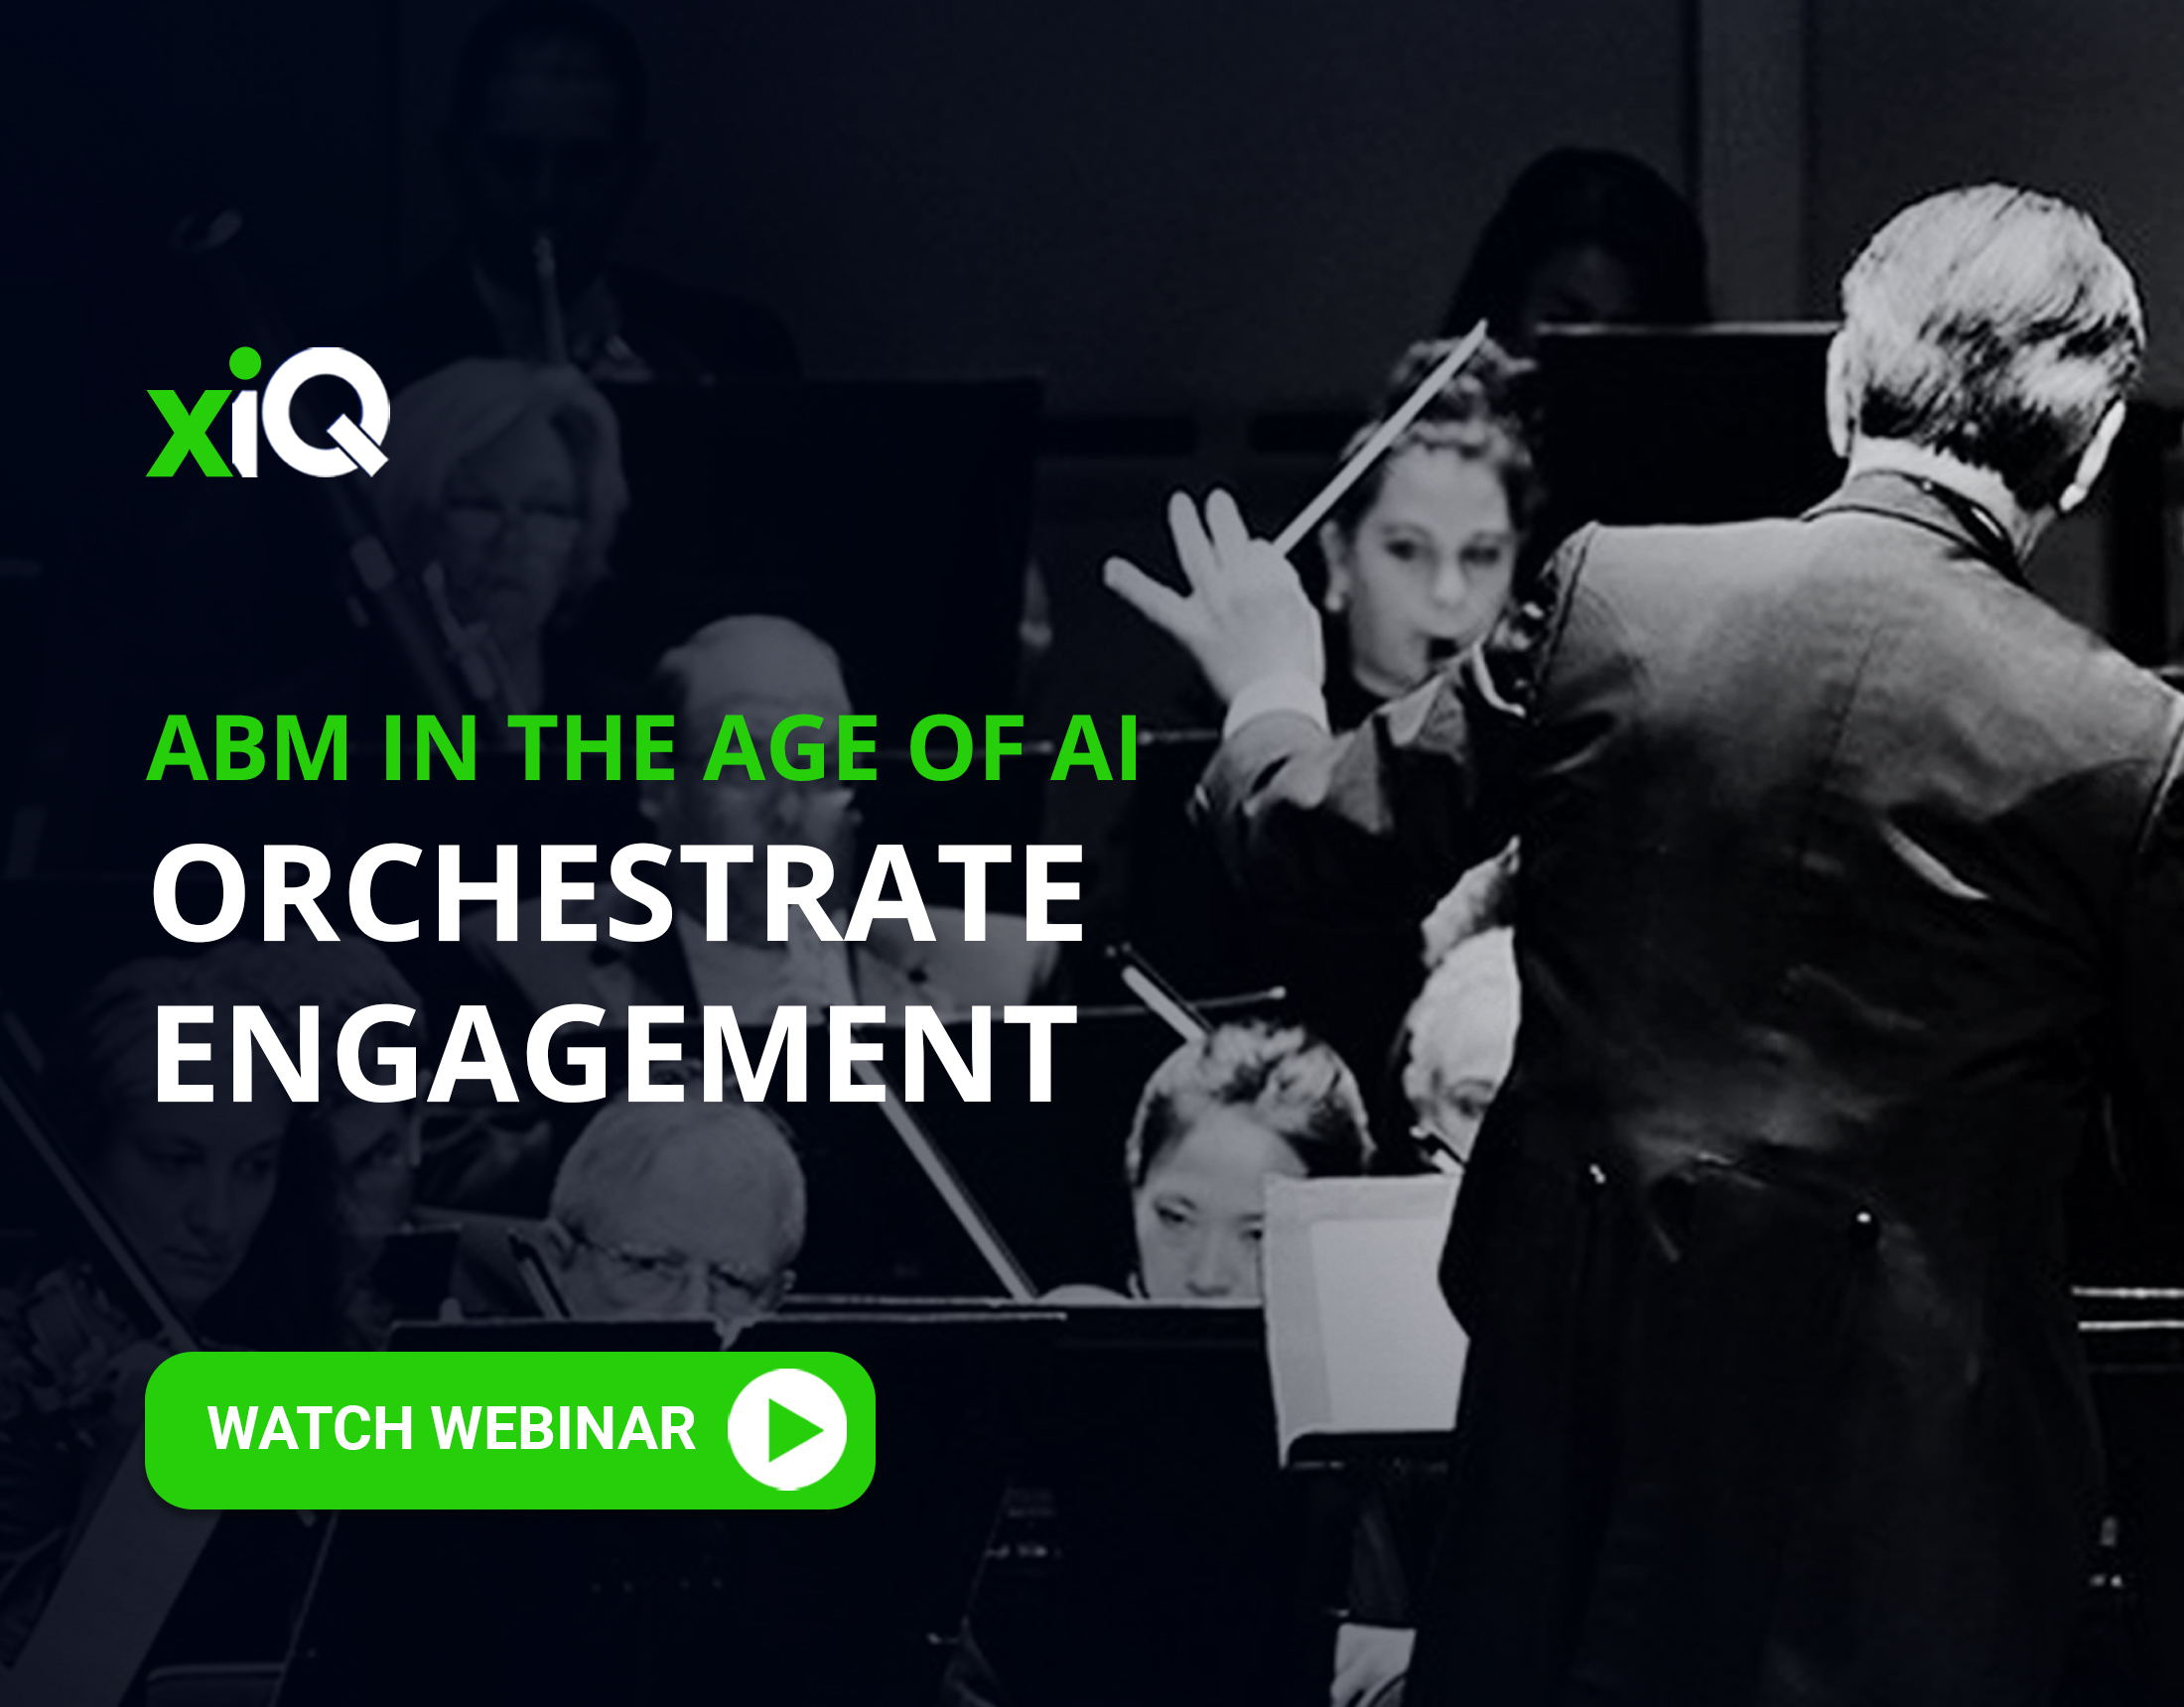 ABM in the age of AI: Orchestrate Engagement with AI